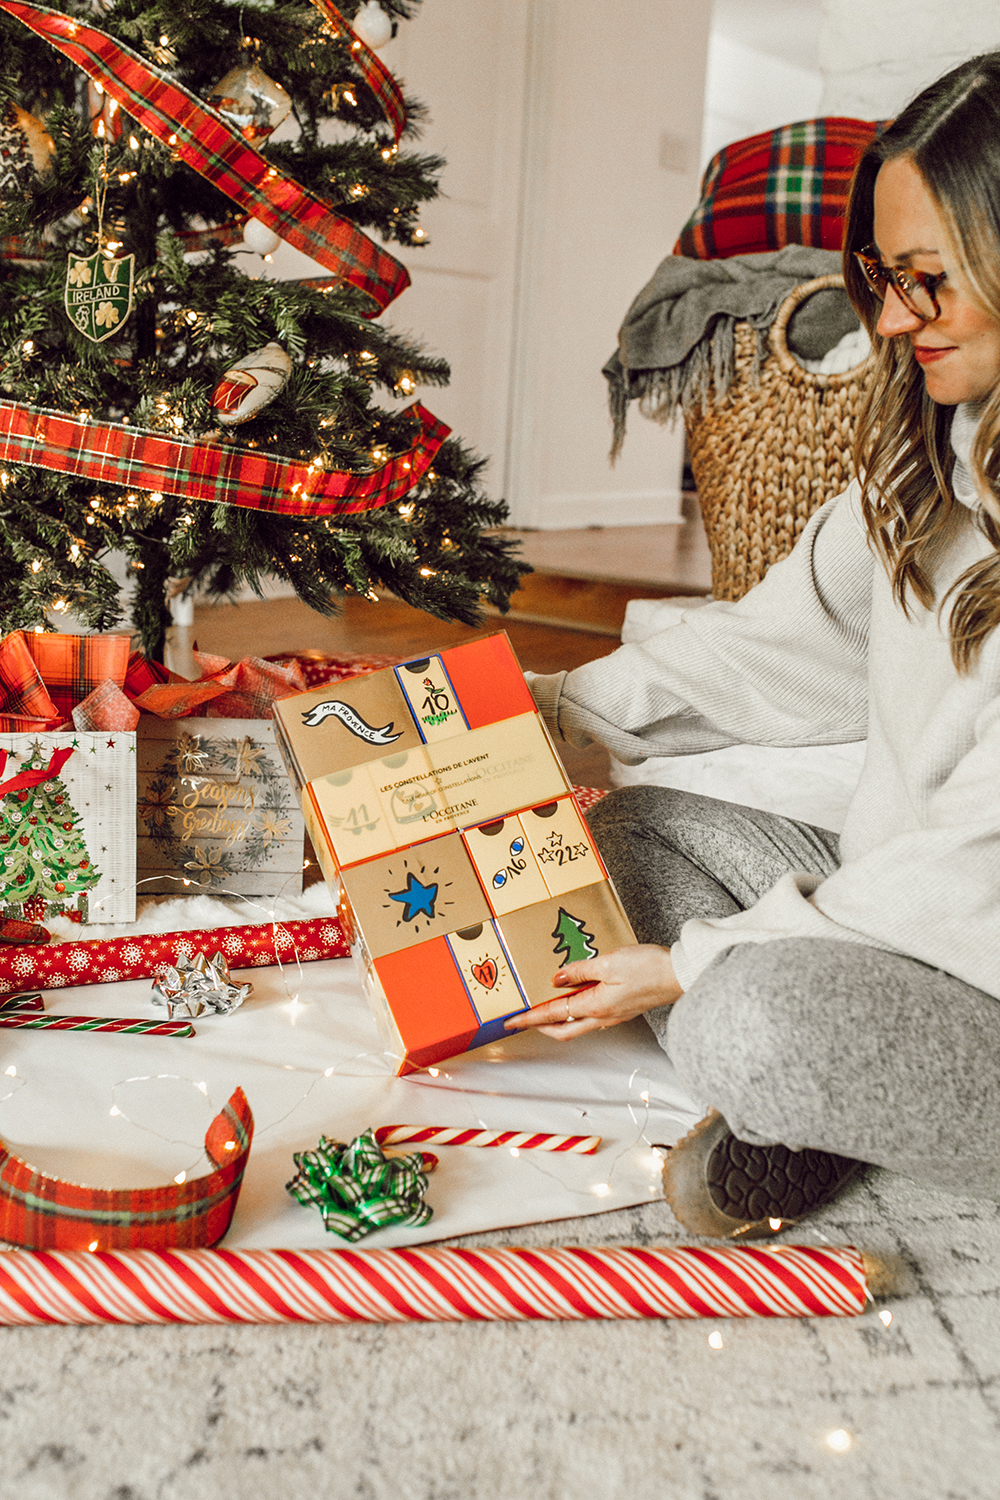 livvyland-blog-olivia-watson-austin-texas-lifestyle-blogger-christmas-tree-holiday-gift-idea-l'occitane-beauty-12